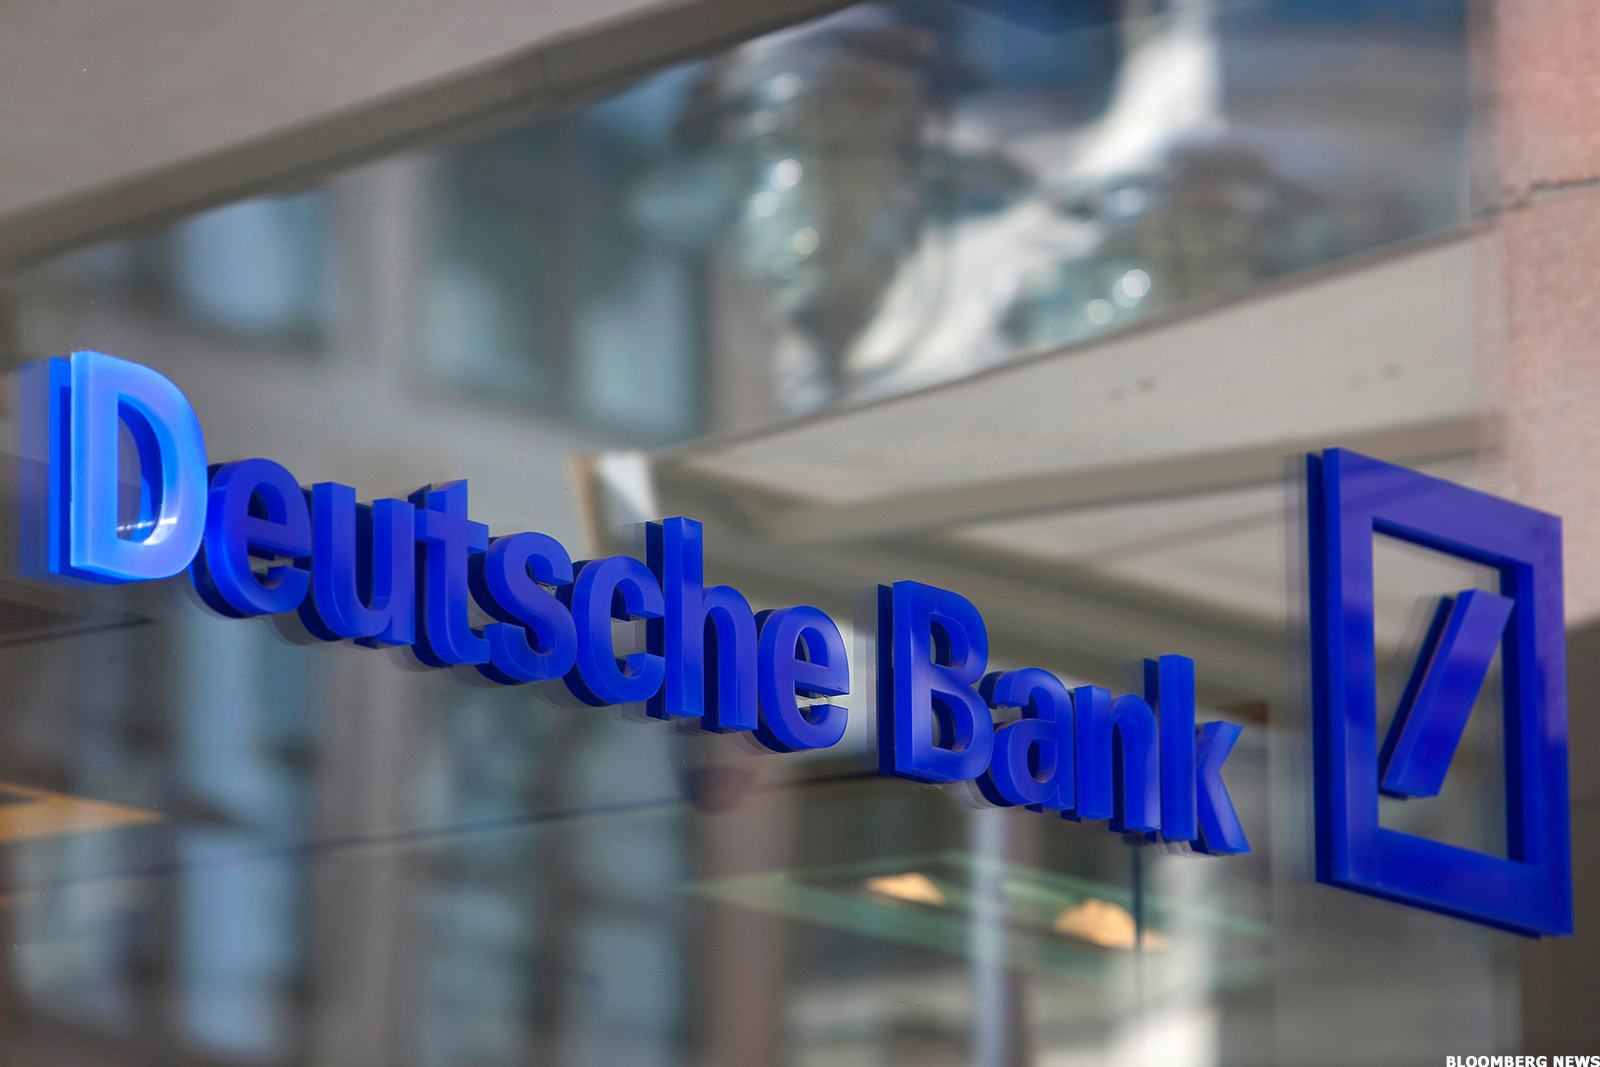 Deutsche Bank Db Stock Gains On Potential Branch